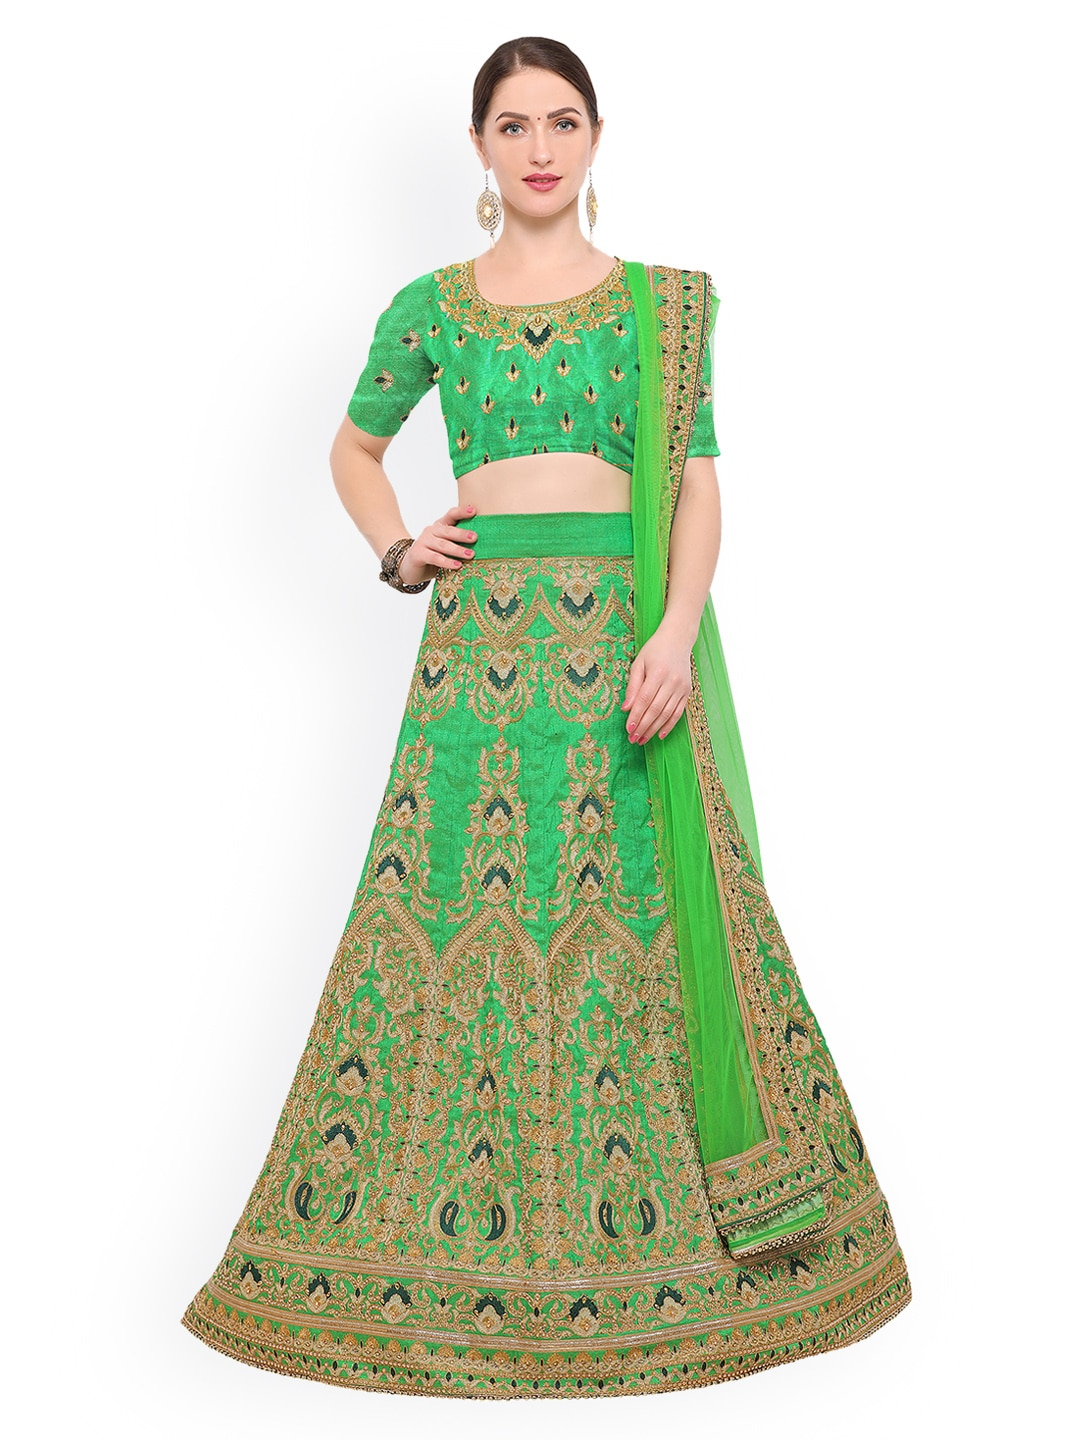 Styles Closet Green Semi-Stitched Lehenga & Blouse with Dupatta image